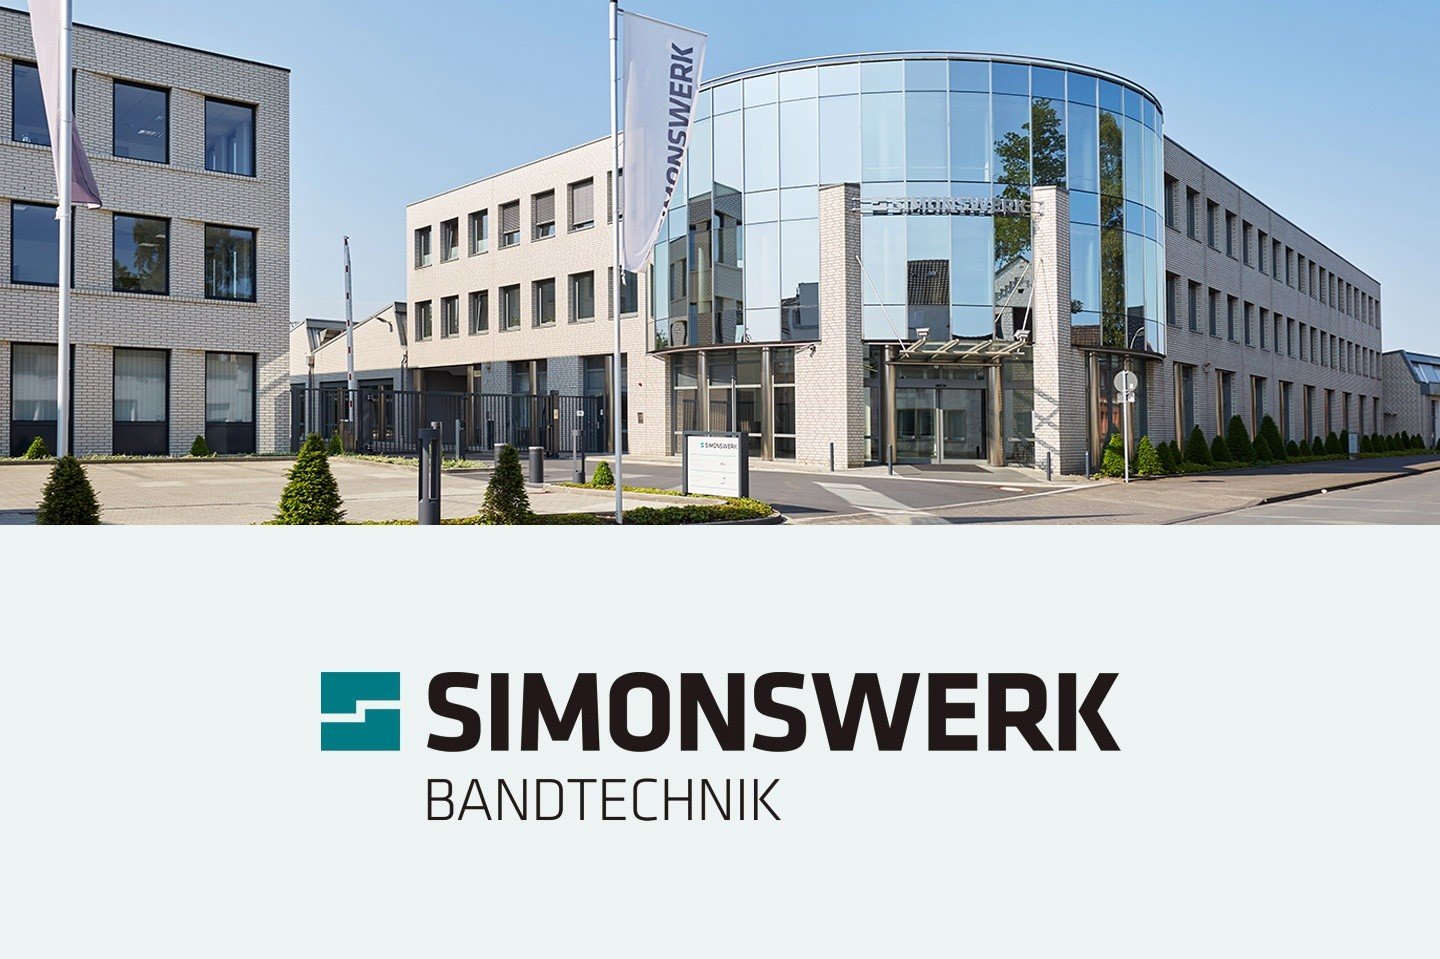 Simonswerk one year from the acquisition